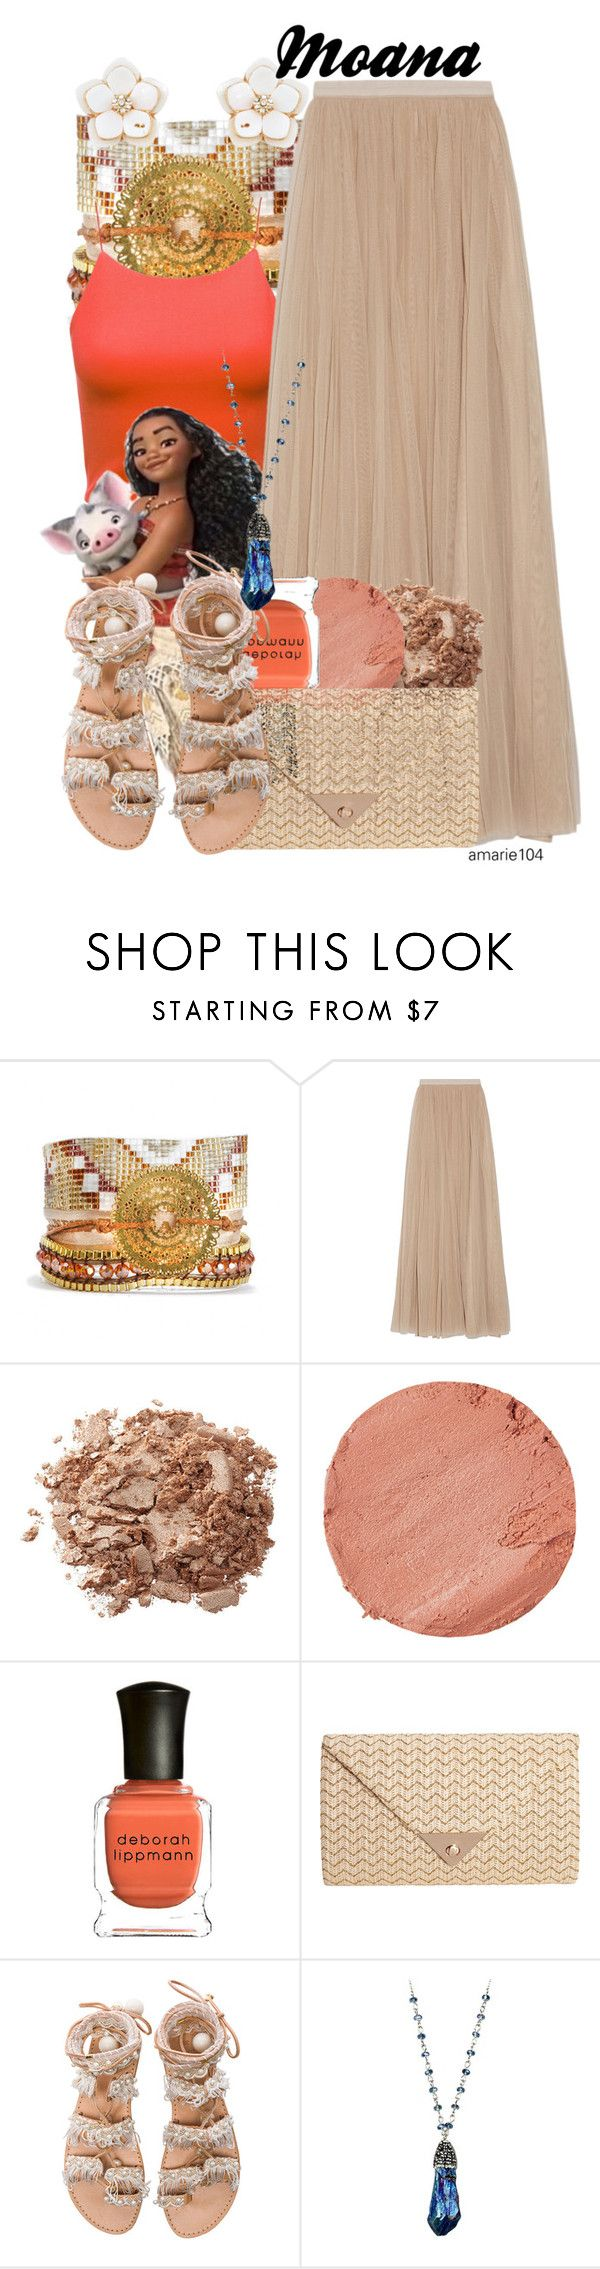 """Moana"" by amarie104 ❤ liked on Polyvore featuring Hipanema, Needle & Thread, Lipstick Queen, Deborah Lippmann, JNB, Elina Linardaki and Accessorize"